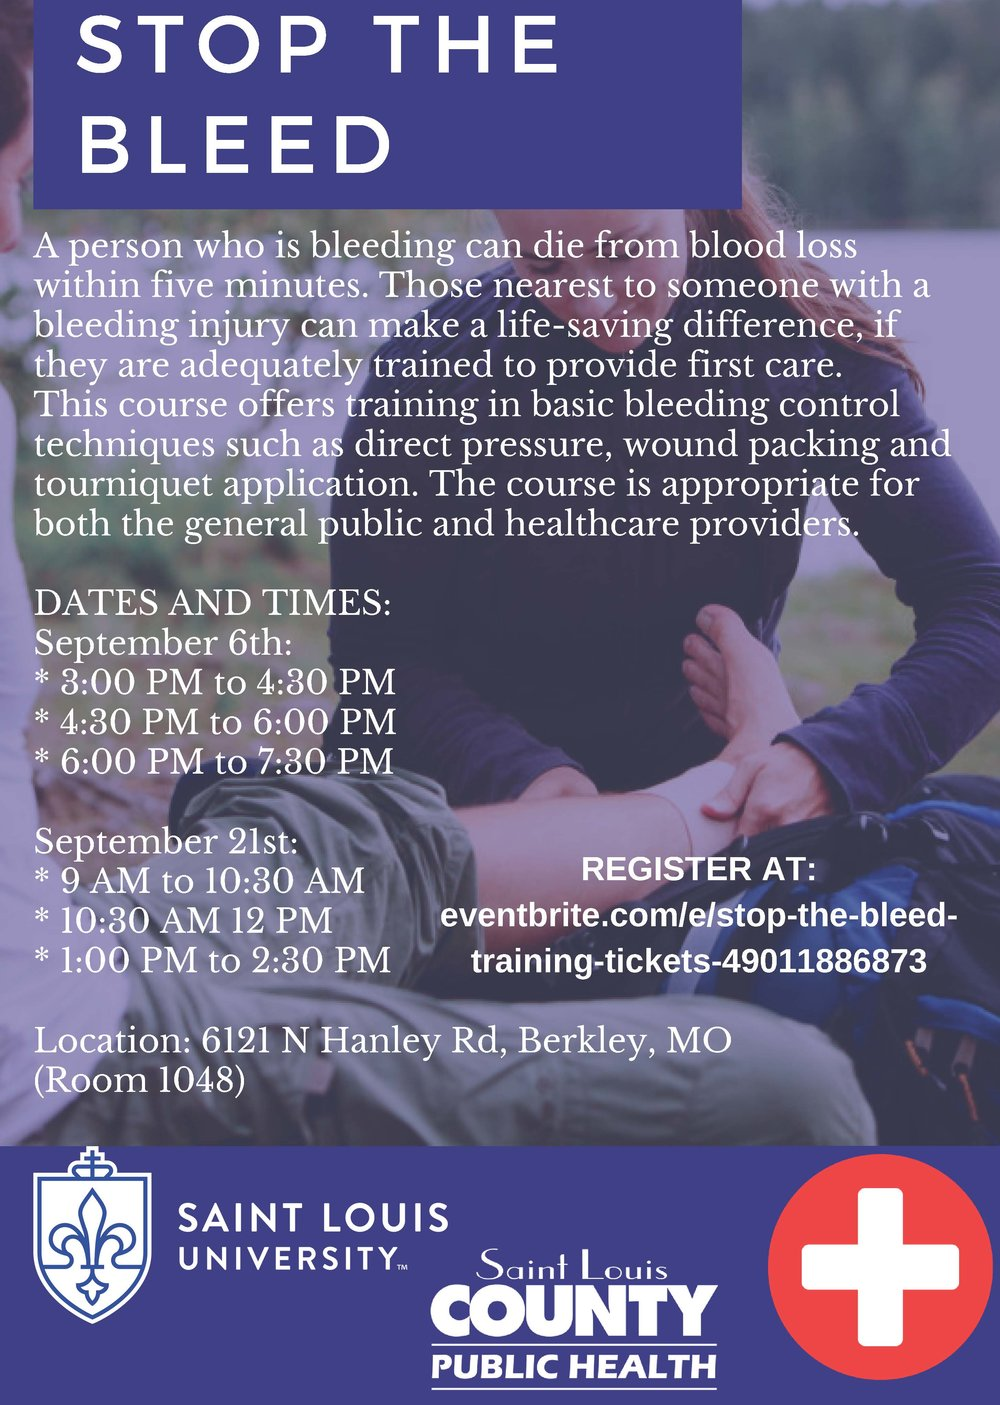 Stop the Bleed Flyer with Link.jpg